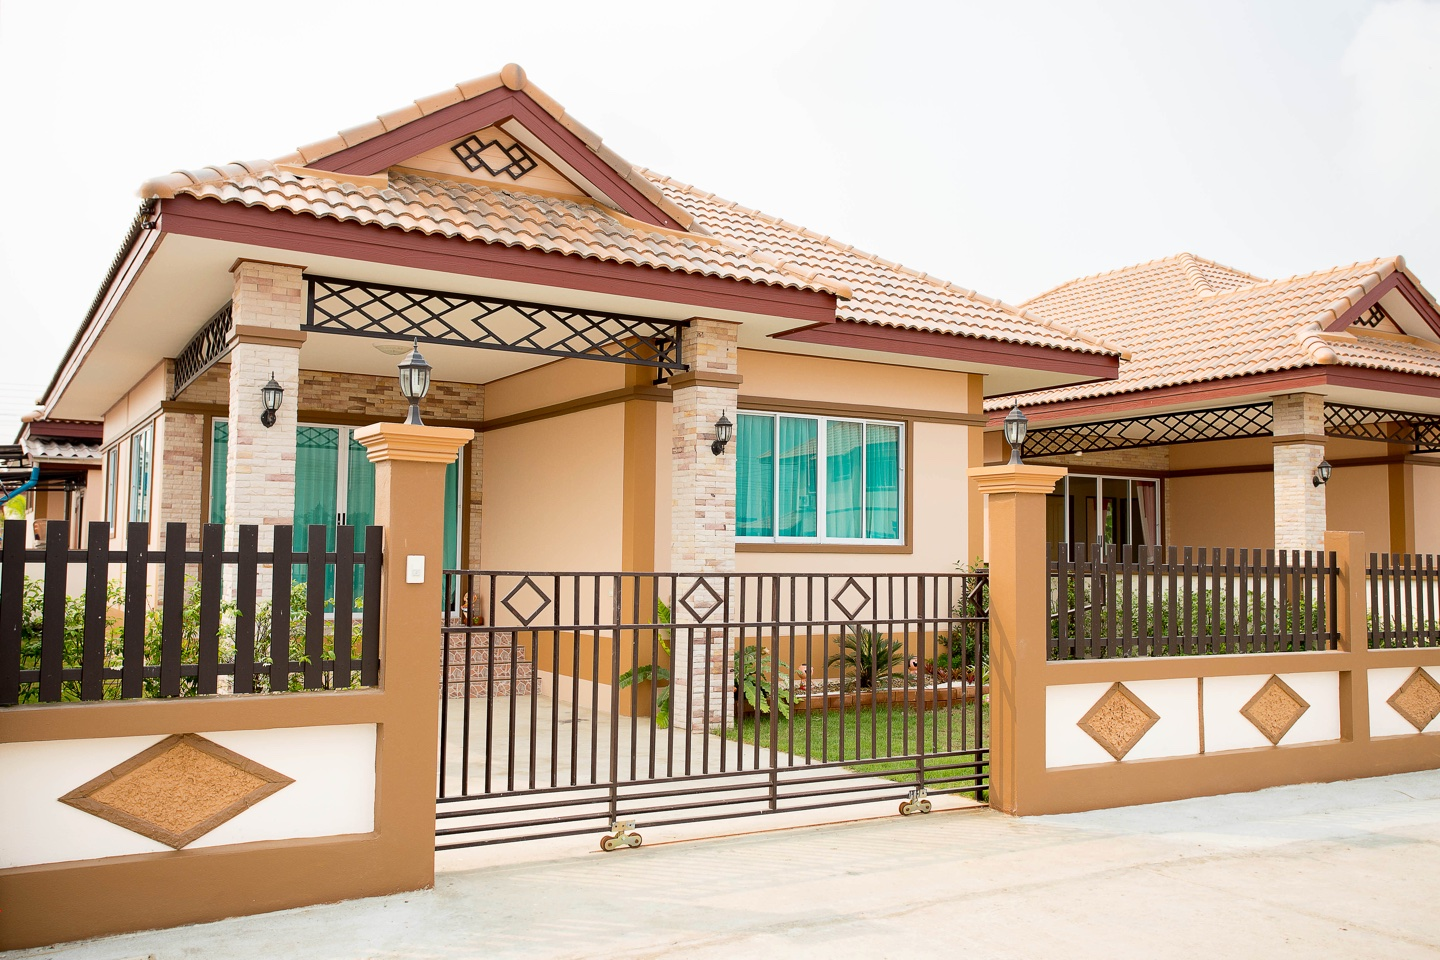 Living in bungalows makes it easy to enjoy more down time. You do not have many levels to clean, to vacuum or too many bathrooms to scrub and bedrooms to maintain. Today, we will show you these bungalows are the best option for you!